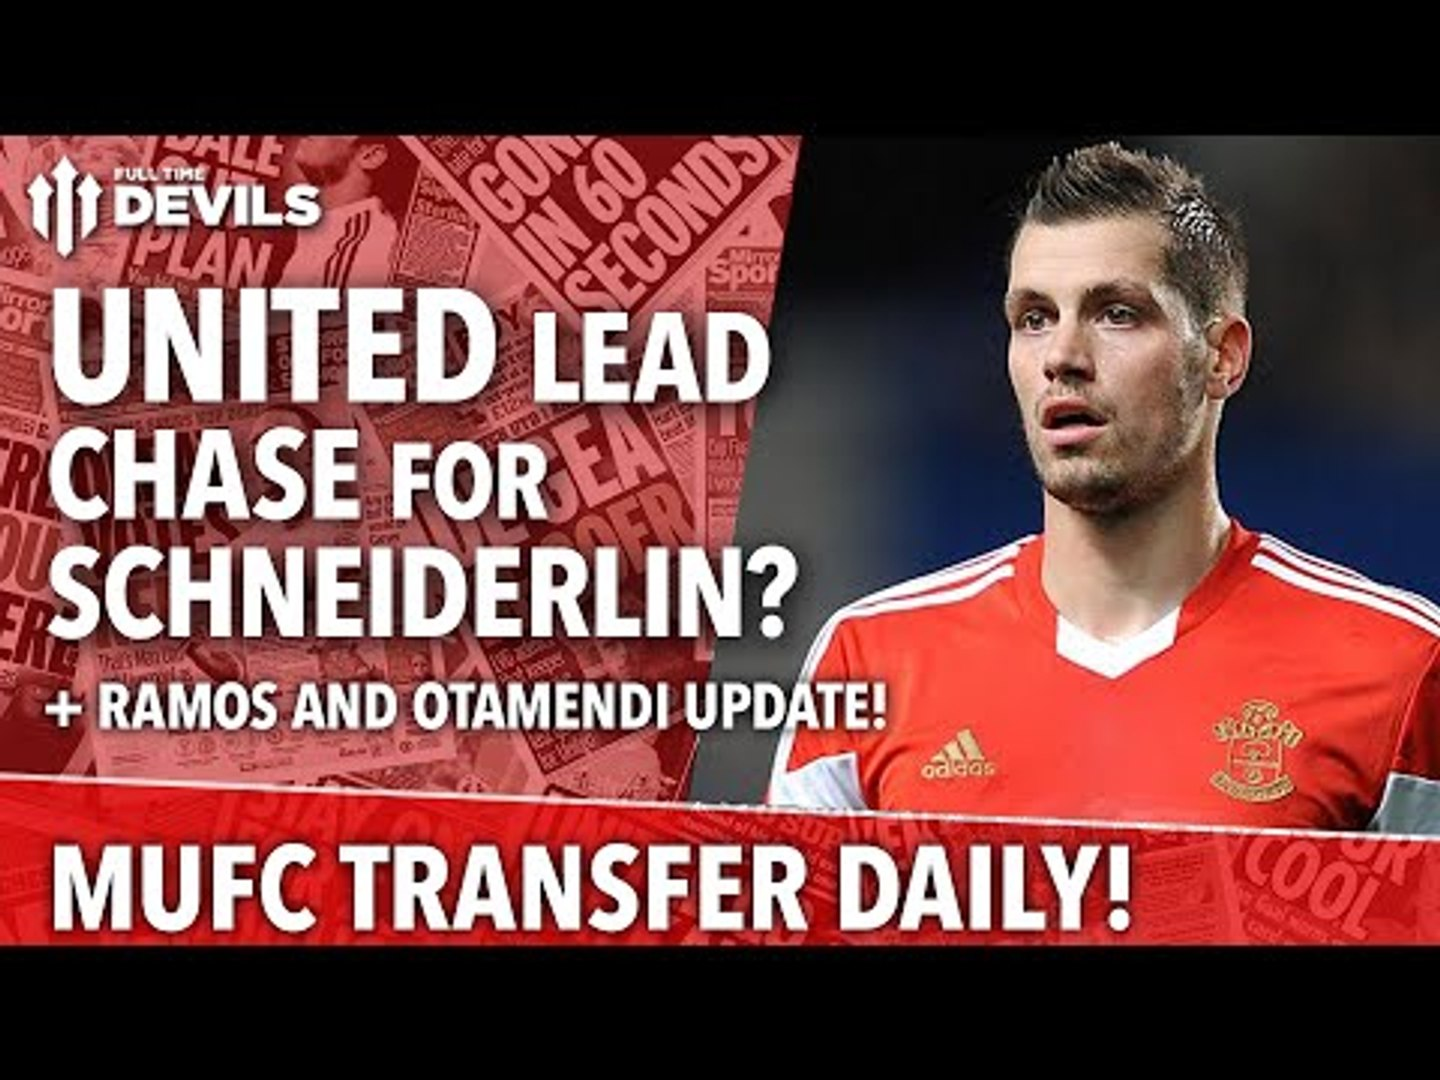 United Lead Chase For Schneiderlin! | Manchester United | Transfer Daily